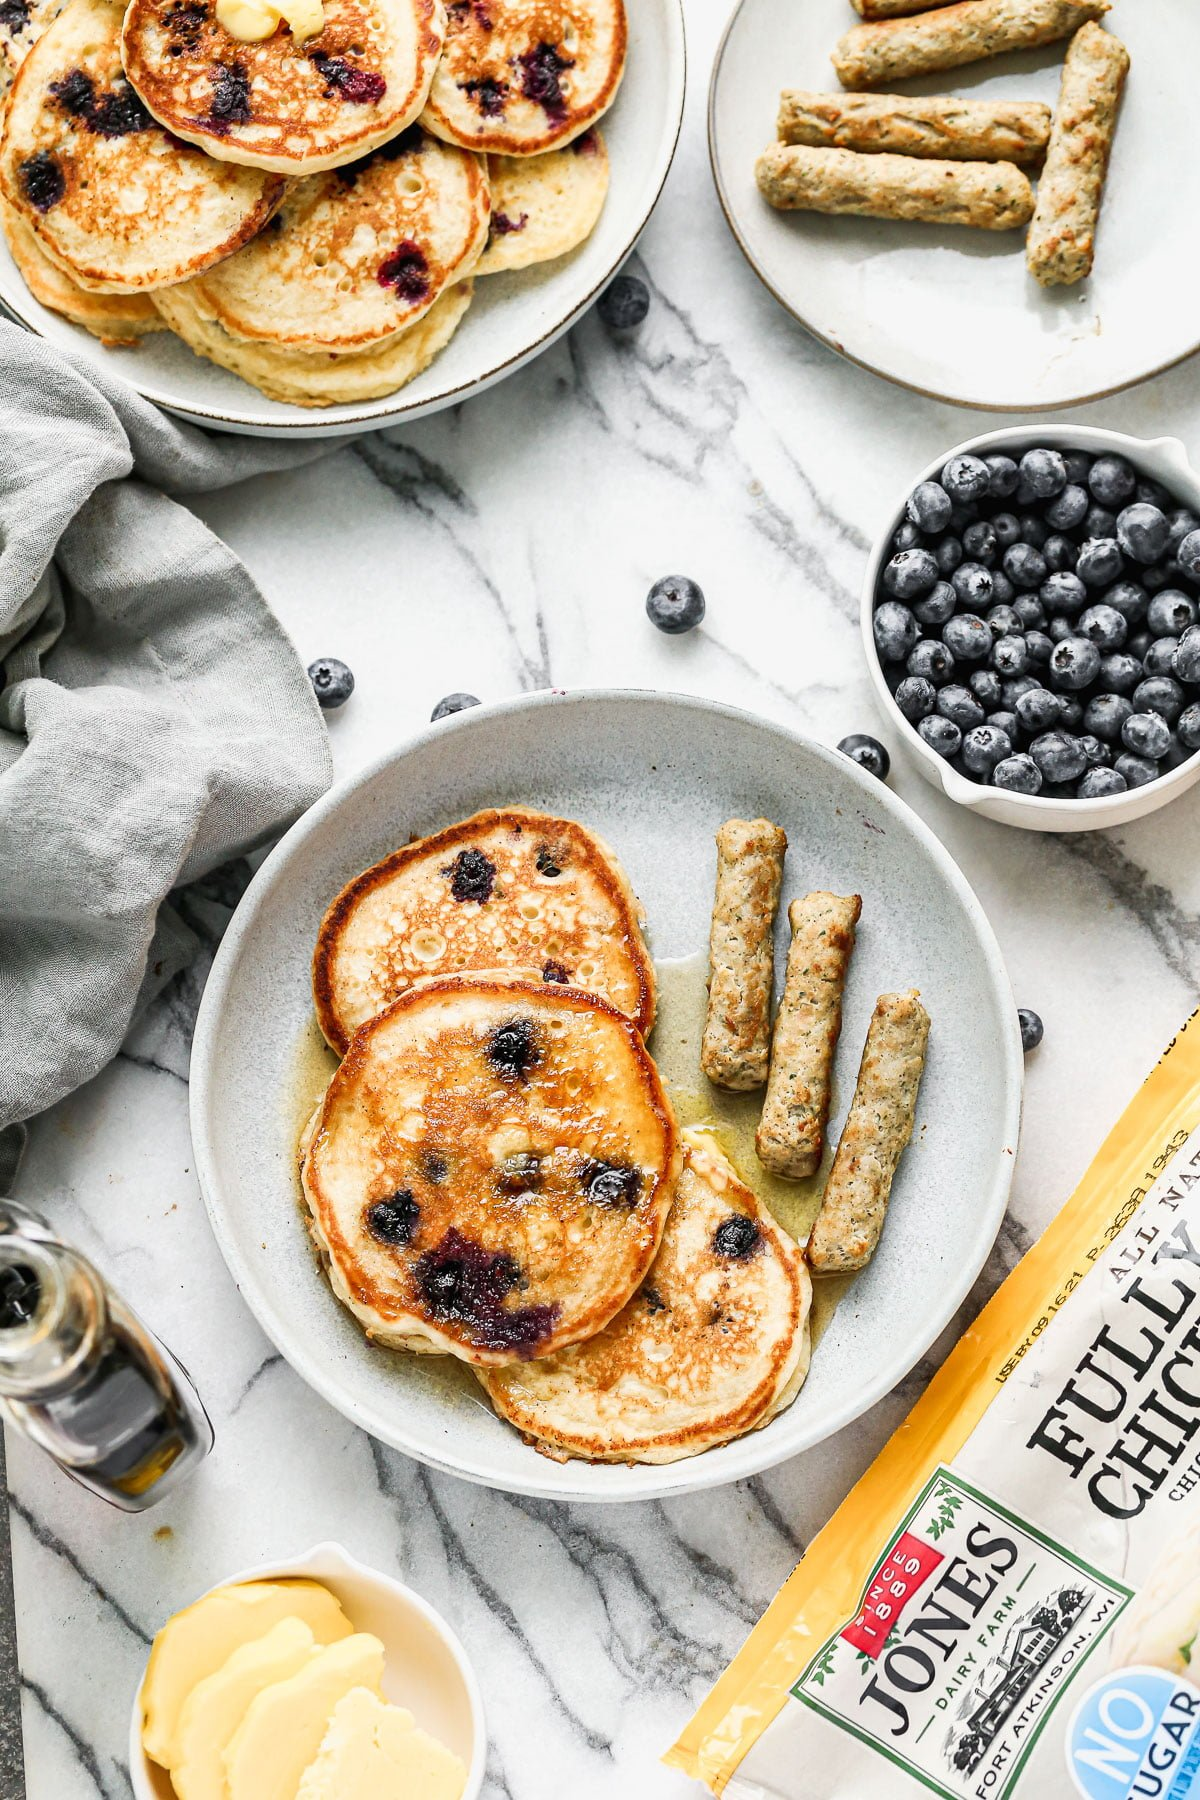 Crispy on the outside, fluffy on the inside and full of tanginess is means these are the best Blueberry Buttermilk Pancakes on the planet!